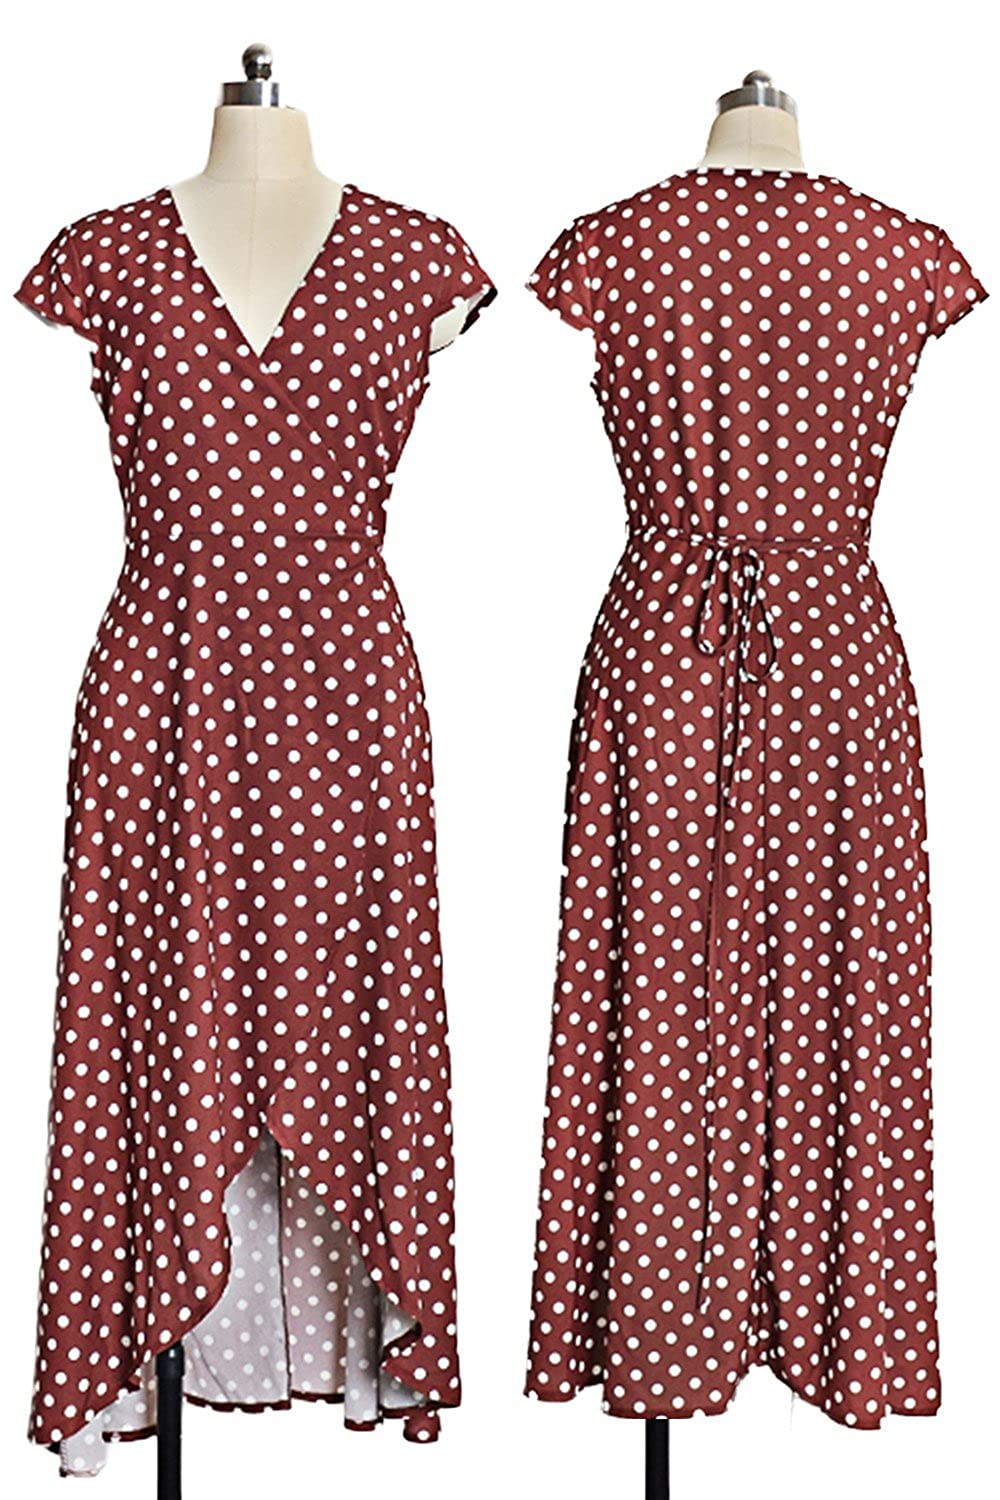 W-GRACE Women Summer Boho Polka Dots Deep V Neck Wrap Dress Cap Sleeve Chiffon Vintage Retro Holiday Beach Maxi Dress at Amazon Womens Clothing store: